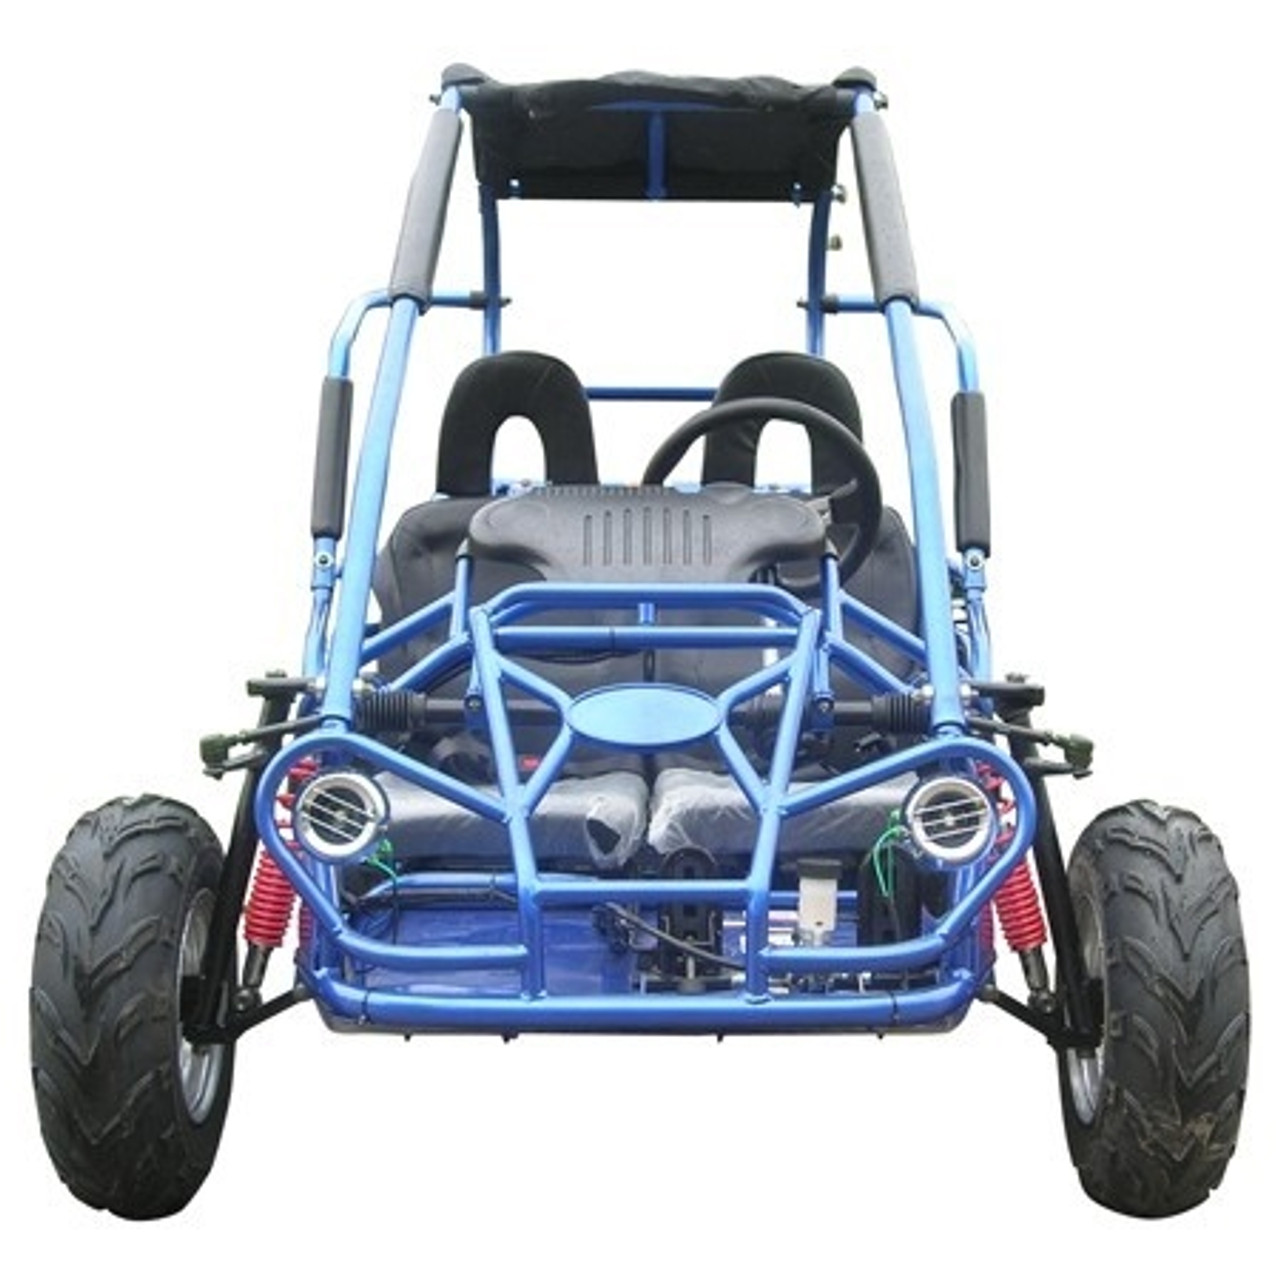 mid size go kart with 6.5 hp engine